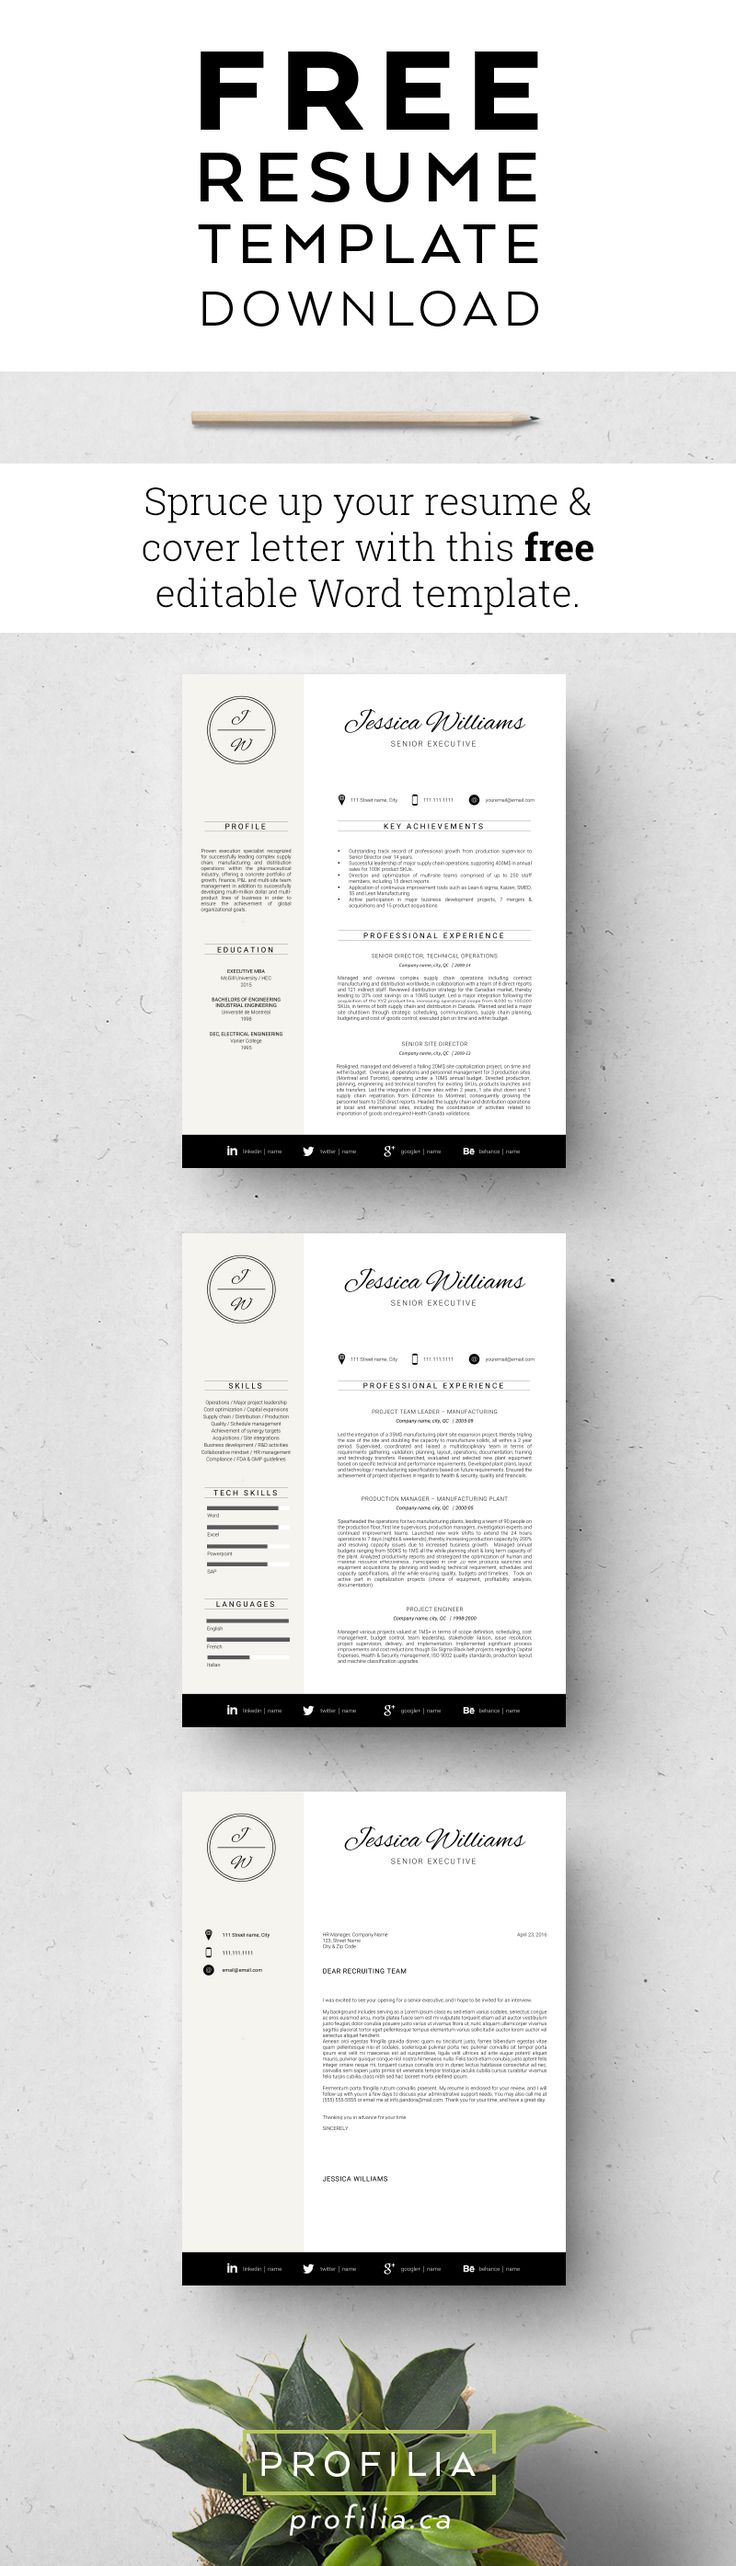 25 unique cover letter template ideas on pinterest cover